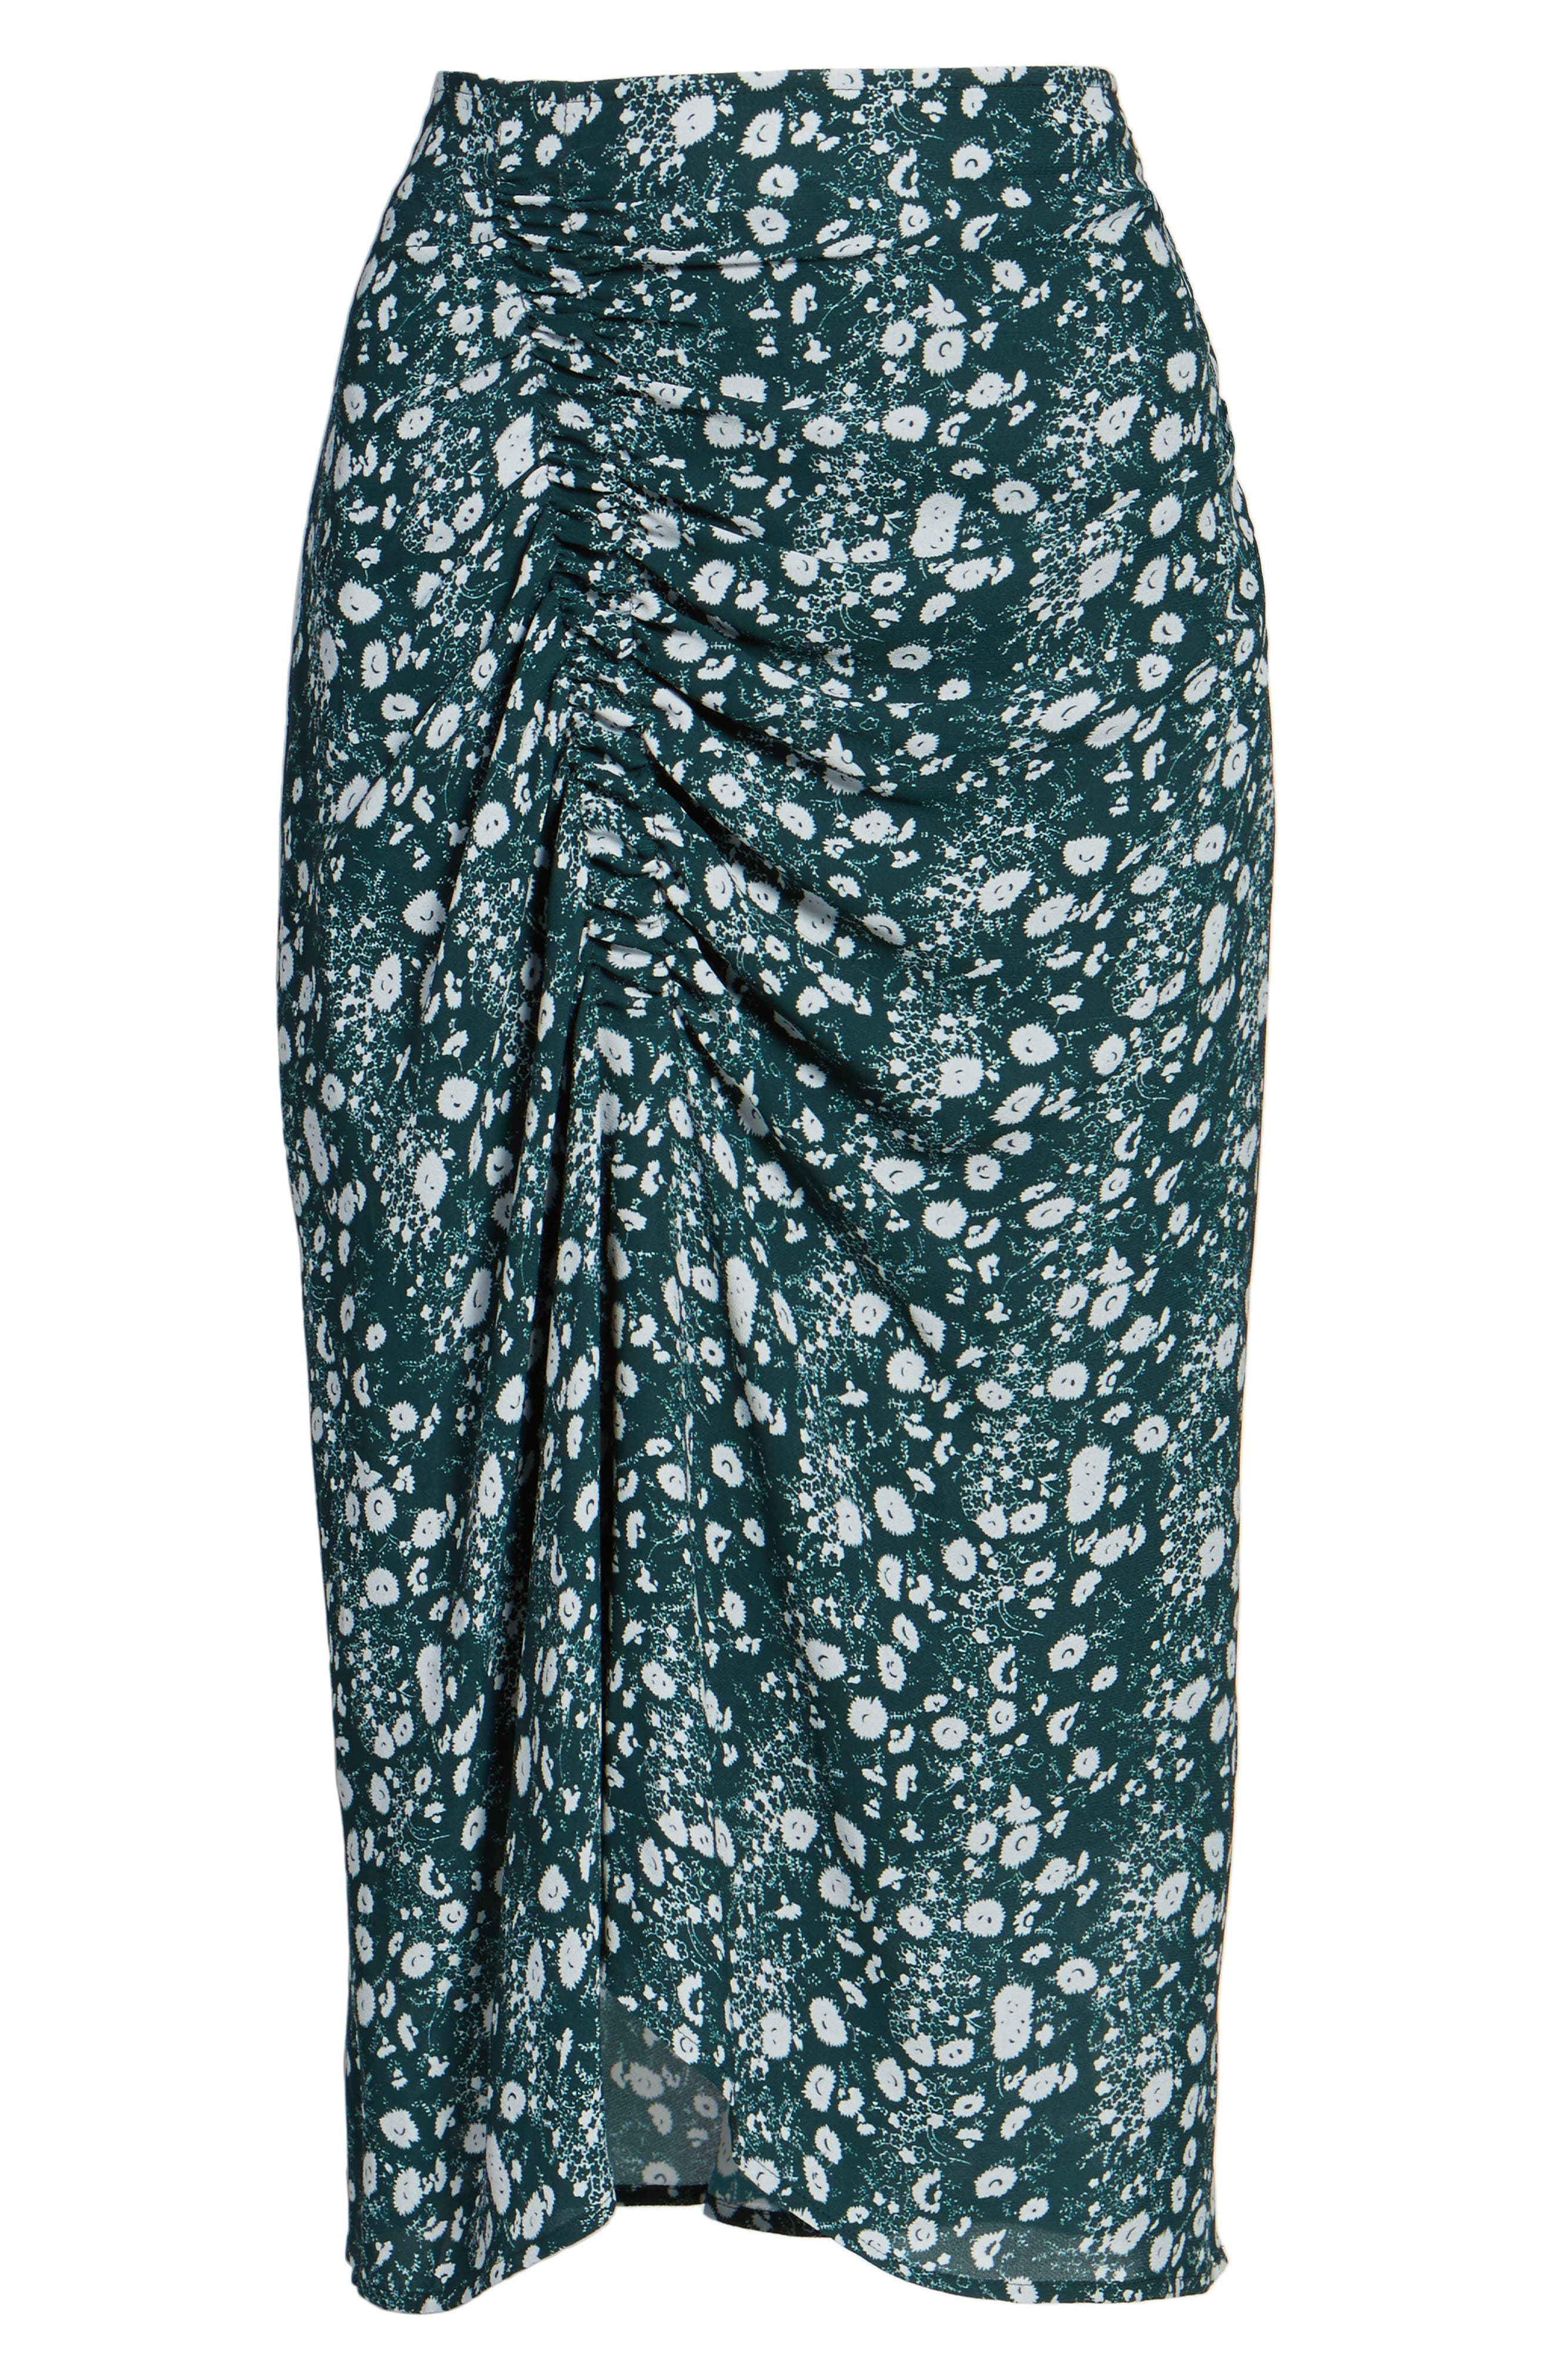 Print Skirt,                             Alternate thumbnail 6, color,                             Green Clara Floral Print